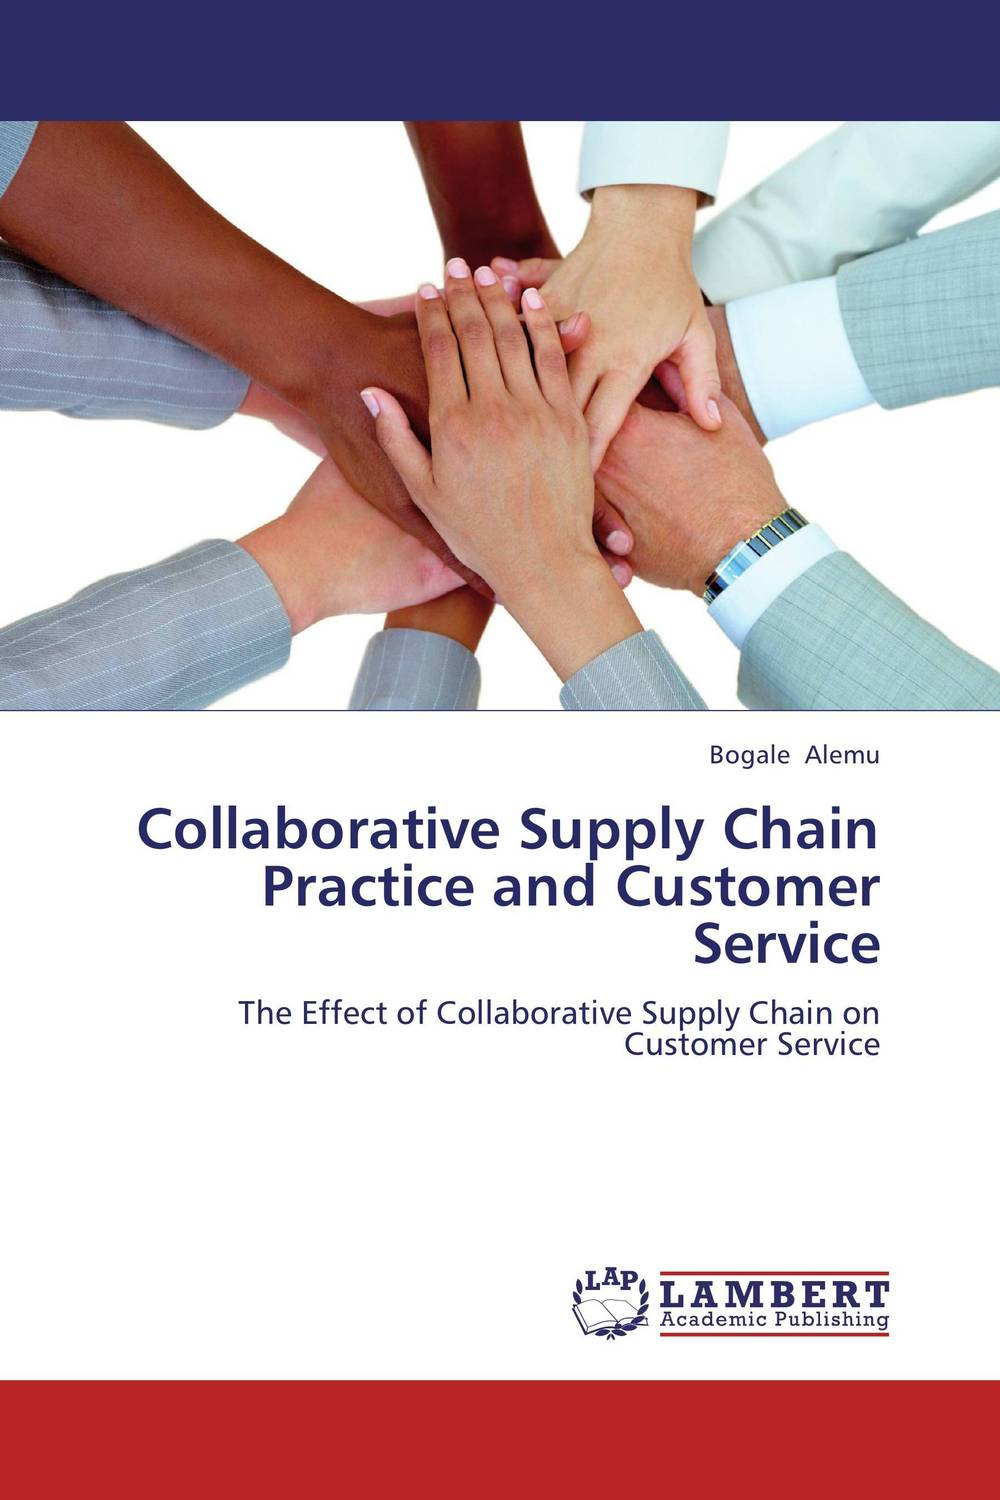 Collaborative Supply Chain Practice and Customer Service